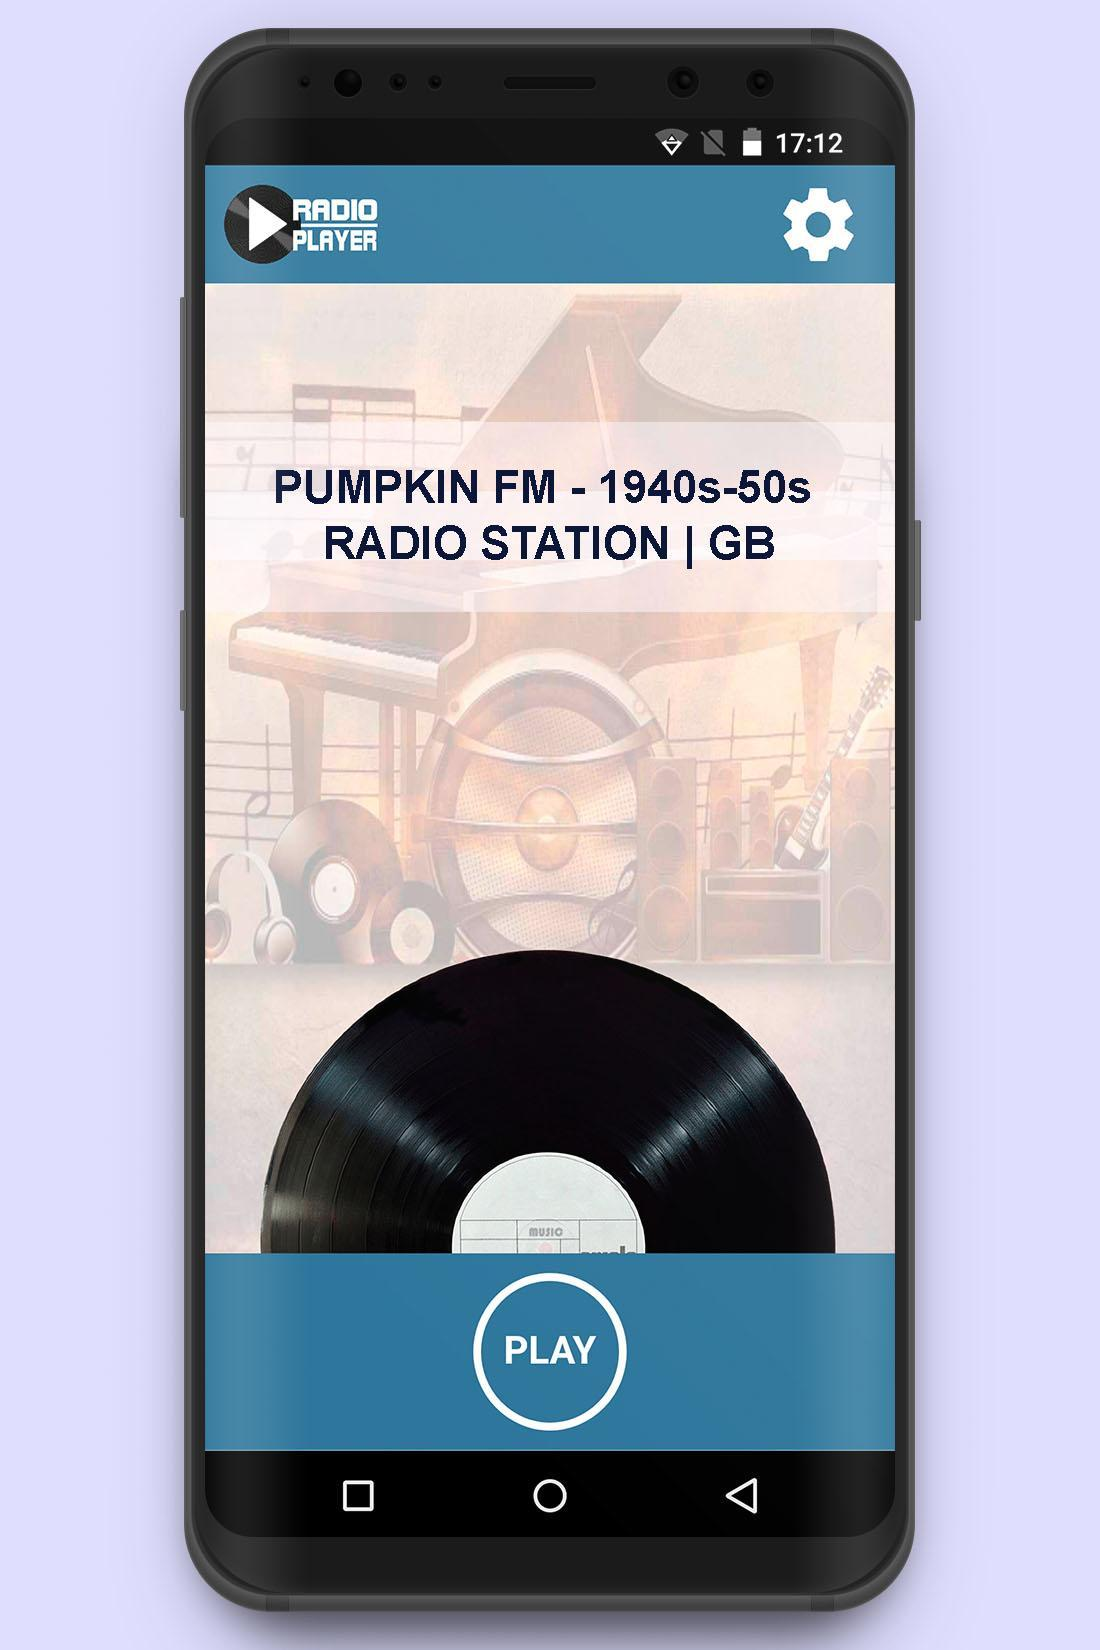 Oldies Pumpkin FM Live Radio - 1940s 1950s- GB for Android